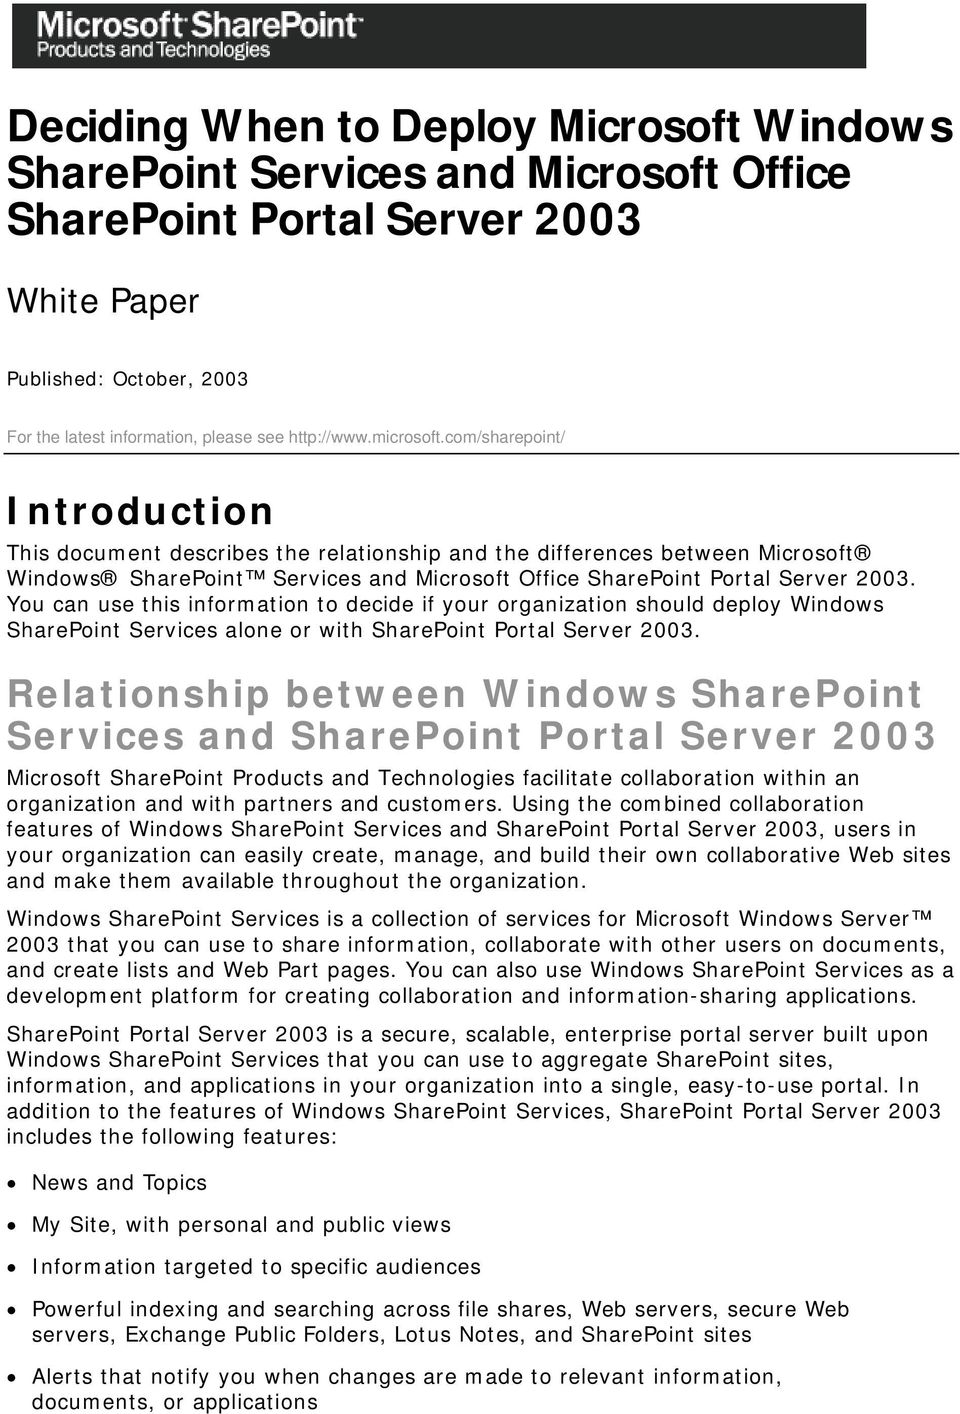 You can use this information to decide if your organization should deploy Windows SharePoint Services alone or with SharePoint Portal Server 2003.